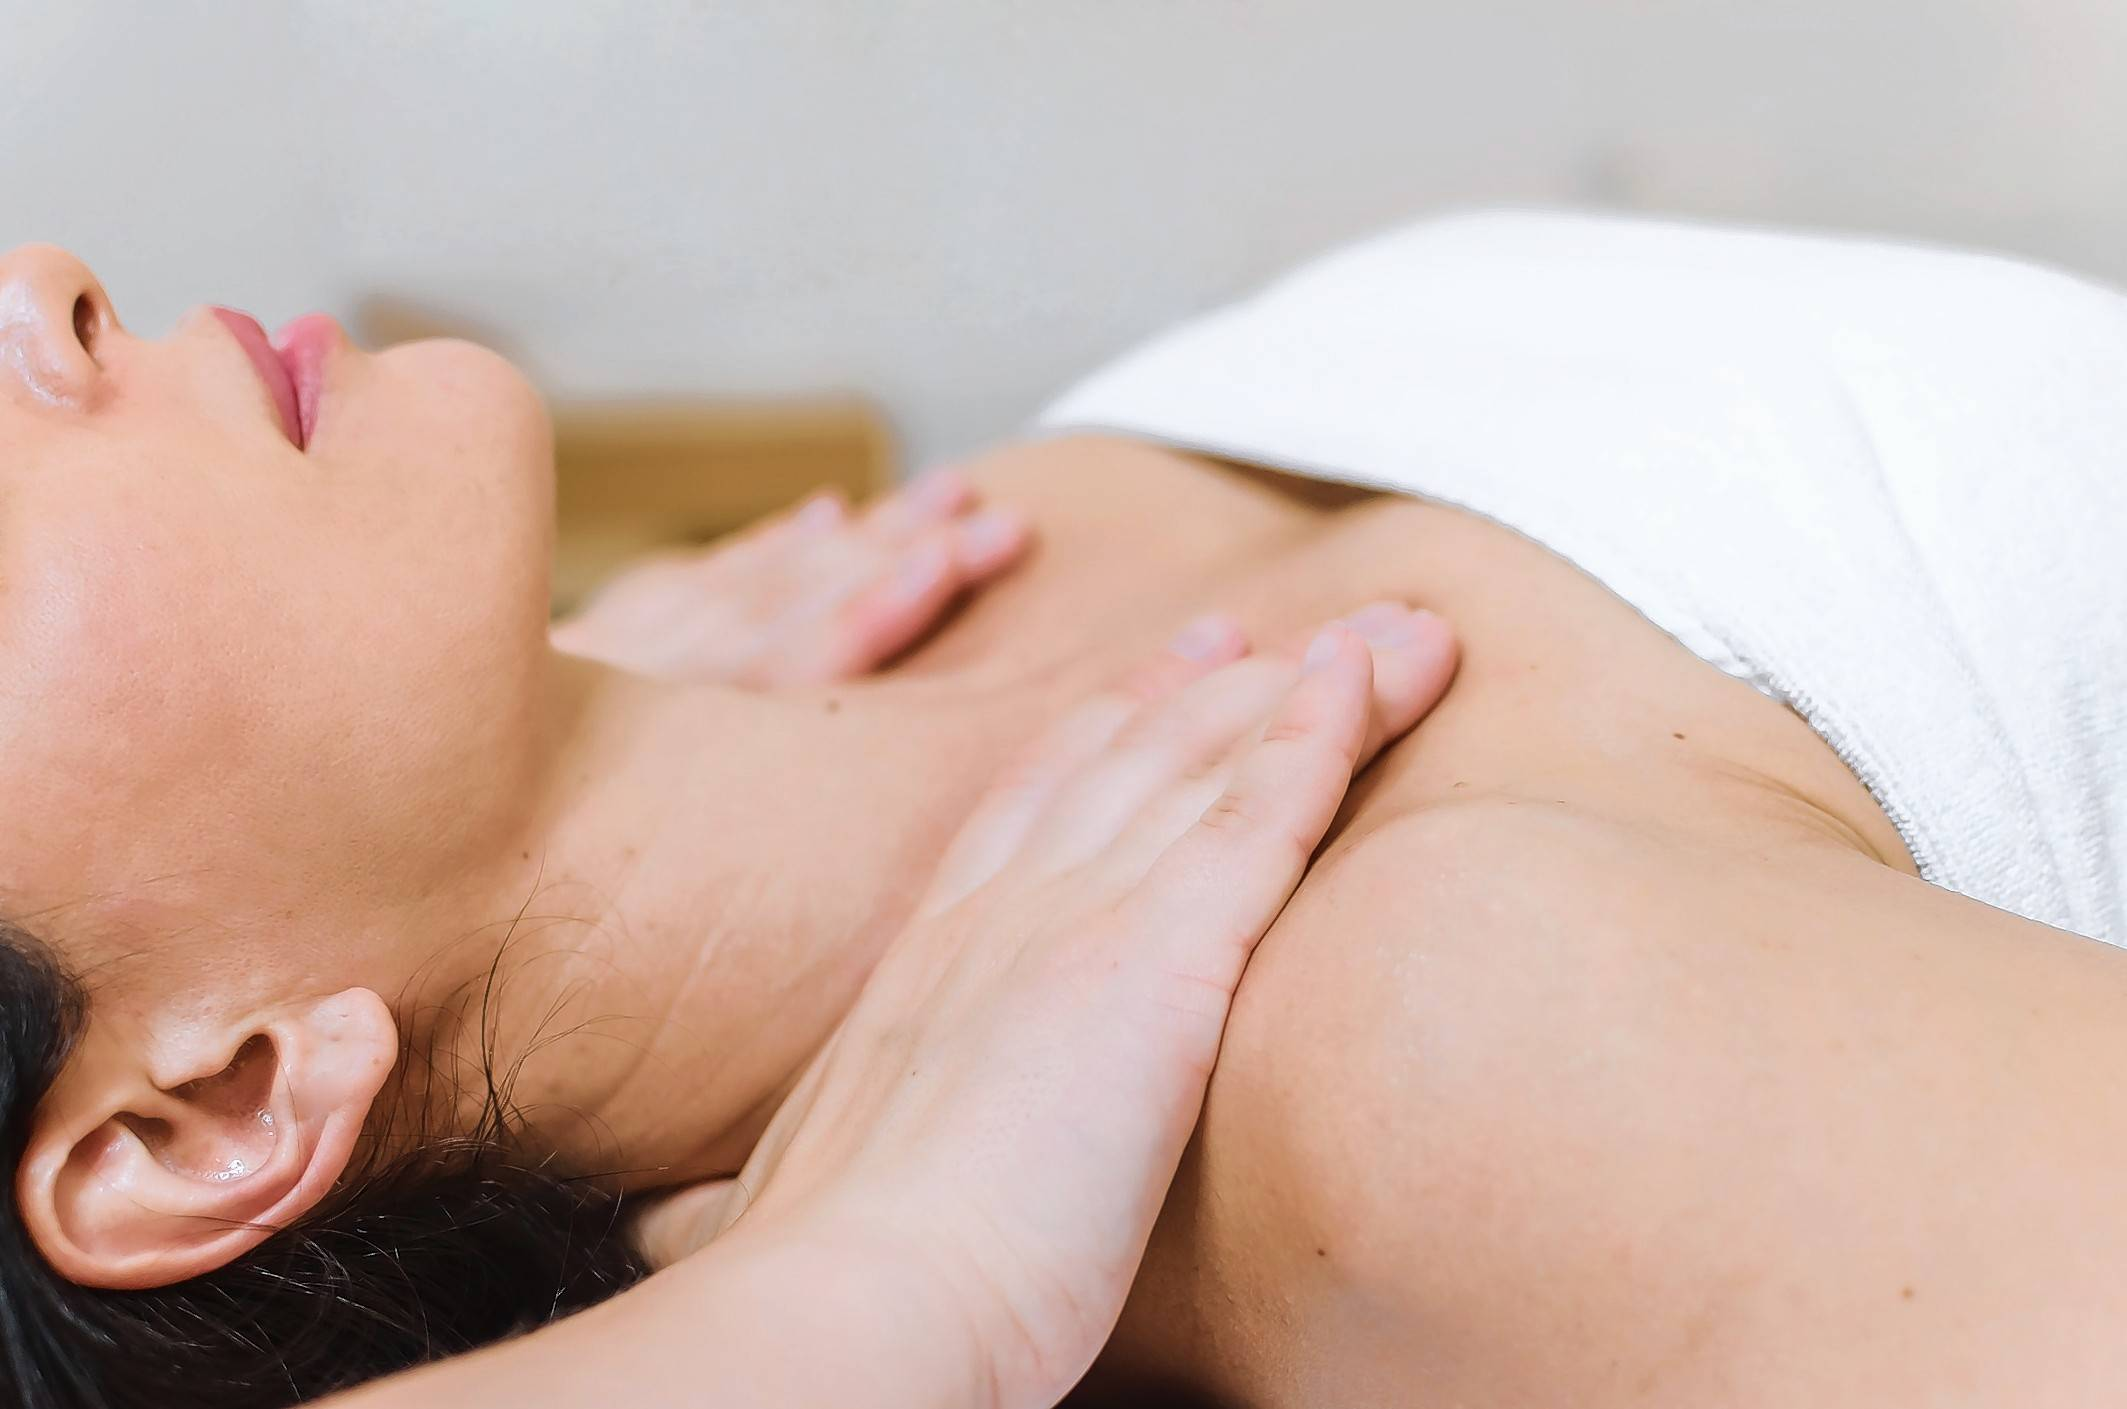 Thinkstock photoA recent study found that myofascial massage focusing on the area of tenderness and disability was able to decrease pain levels and increase mobility after breast cancer surgery.